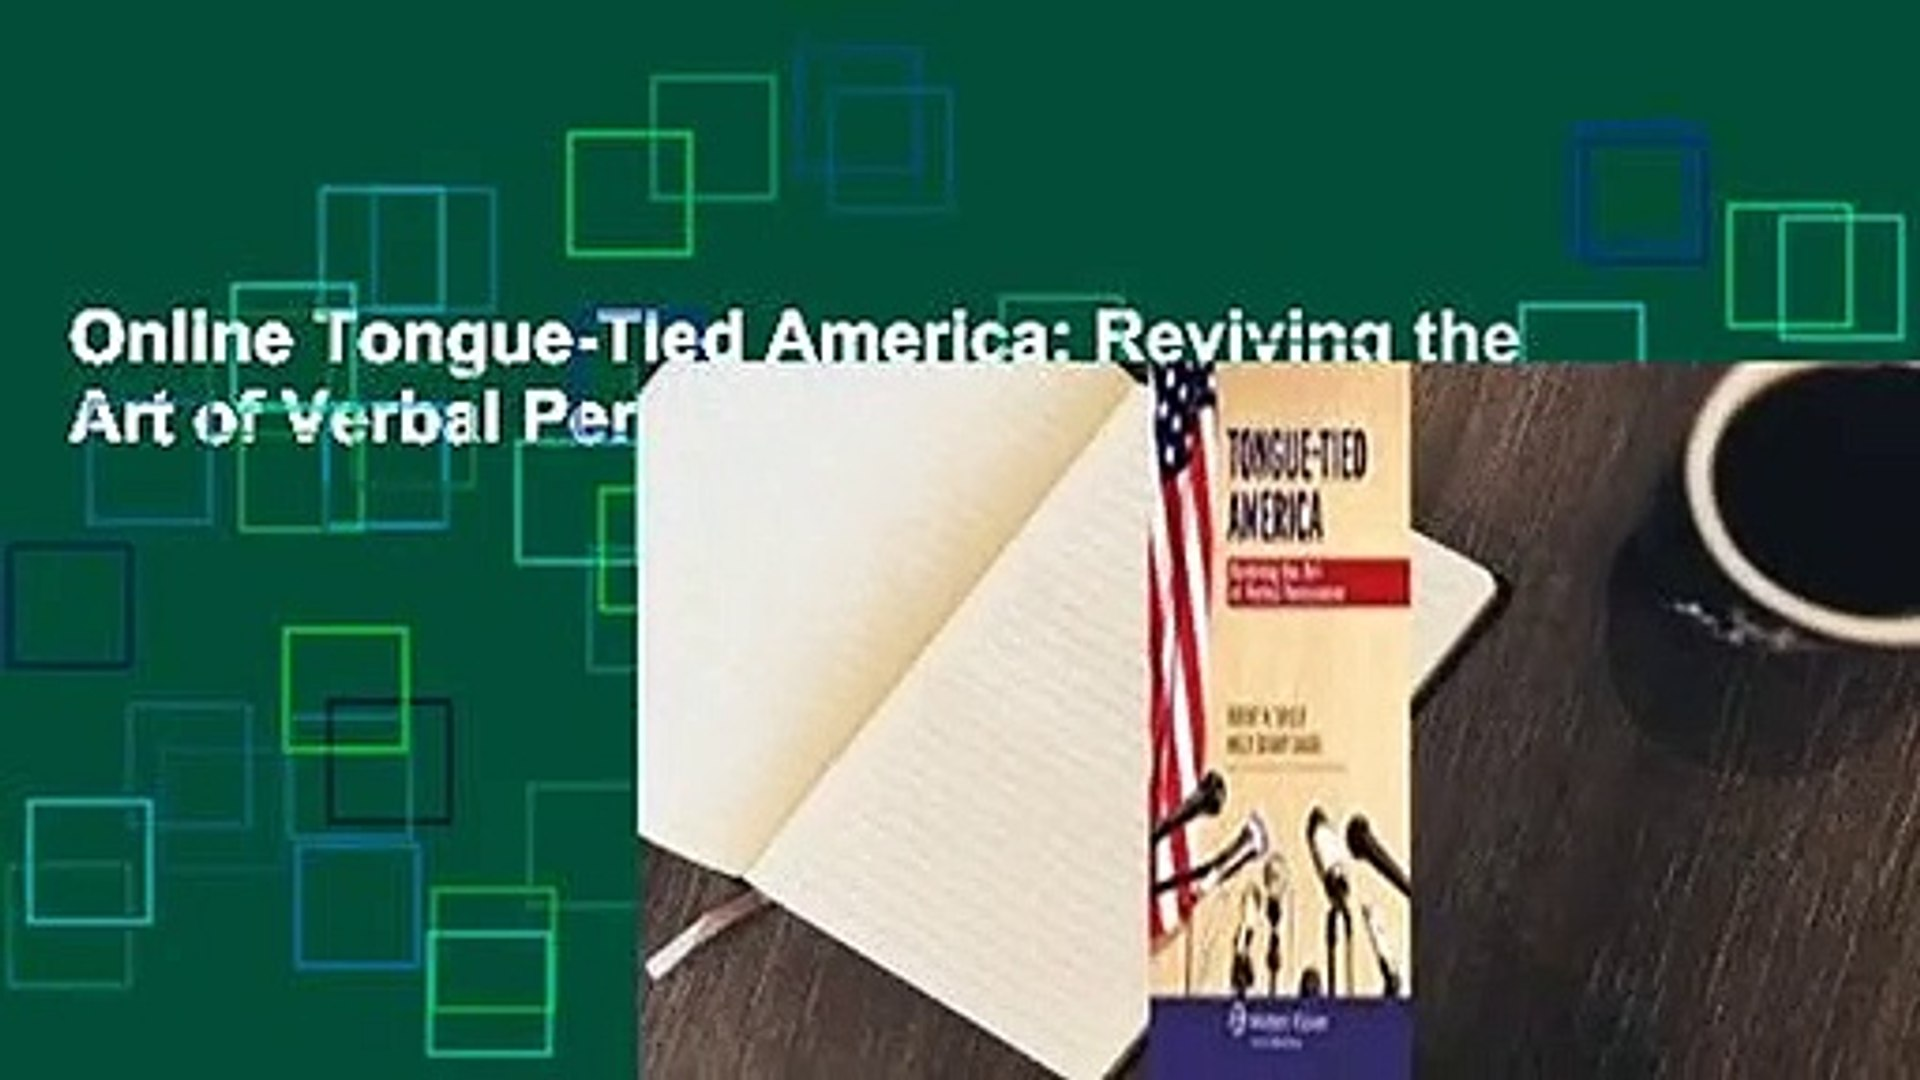 Online Tongue-Tied America: Reviving the Art of Verbal Persuasion  For Trial